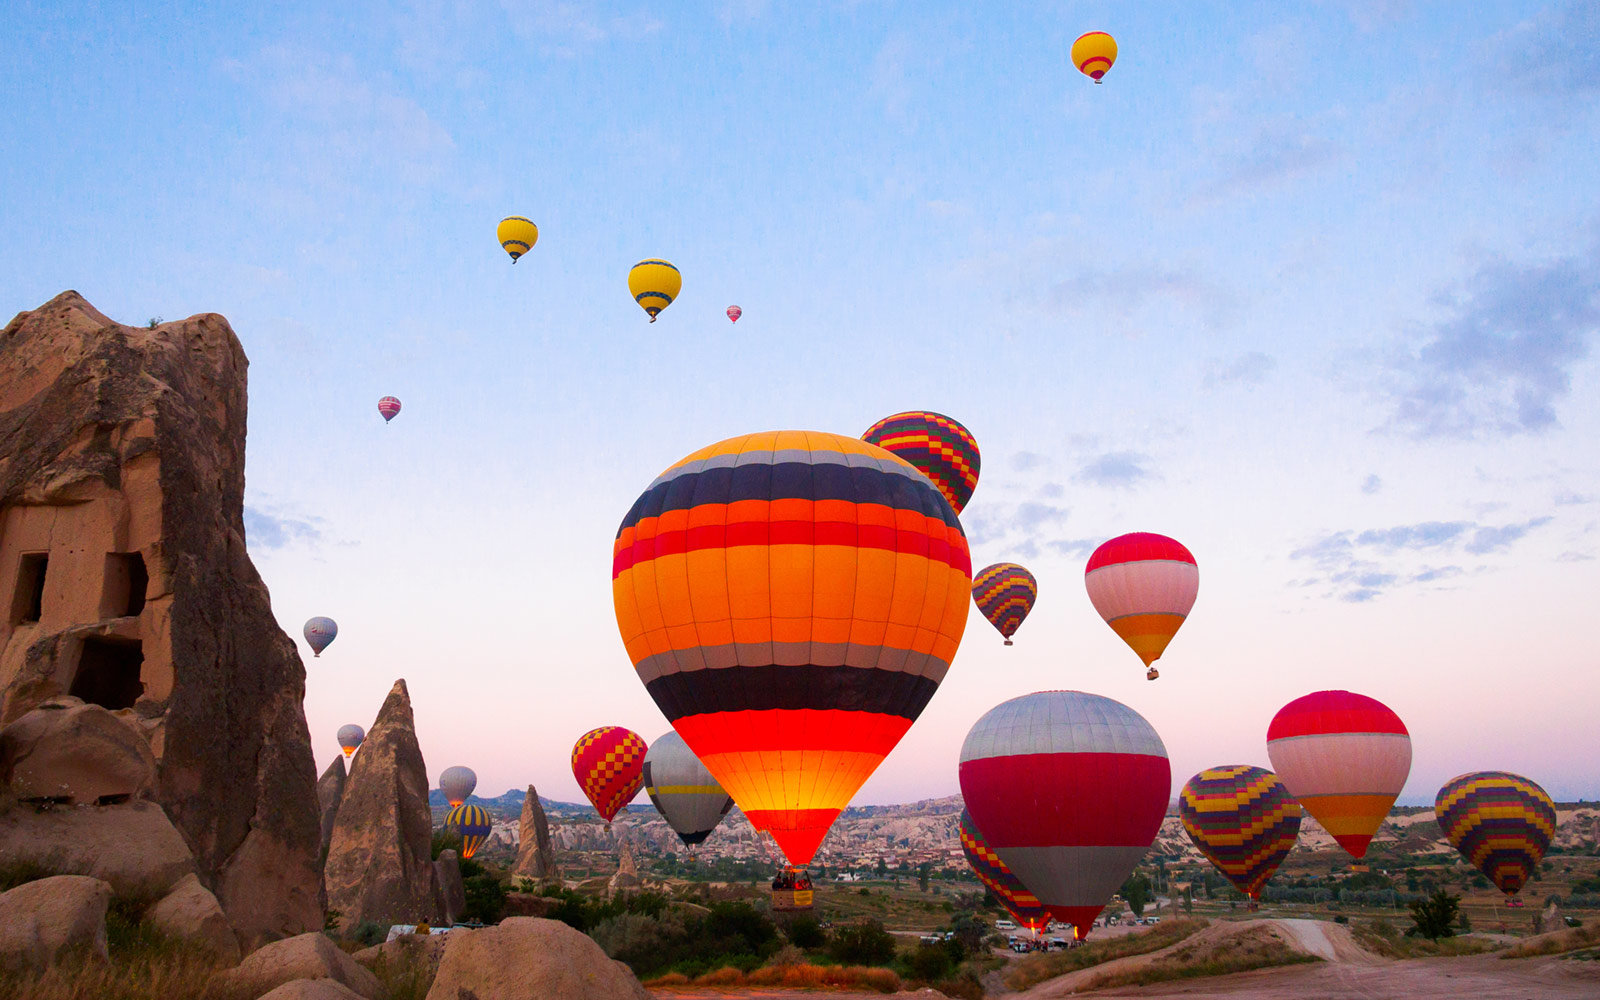 Wallpaper Images Of Fall Flying In A Hot Air Balloon In Cappadocia Should Be On